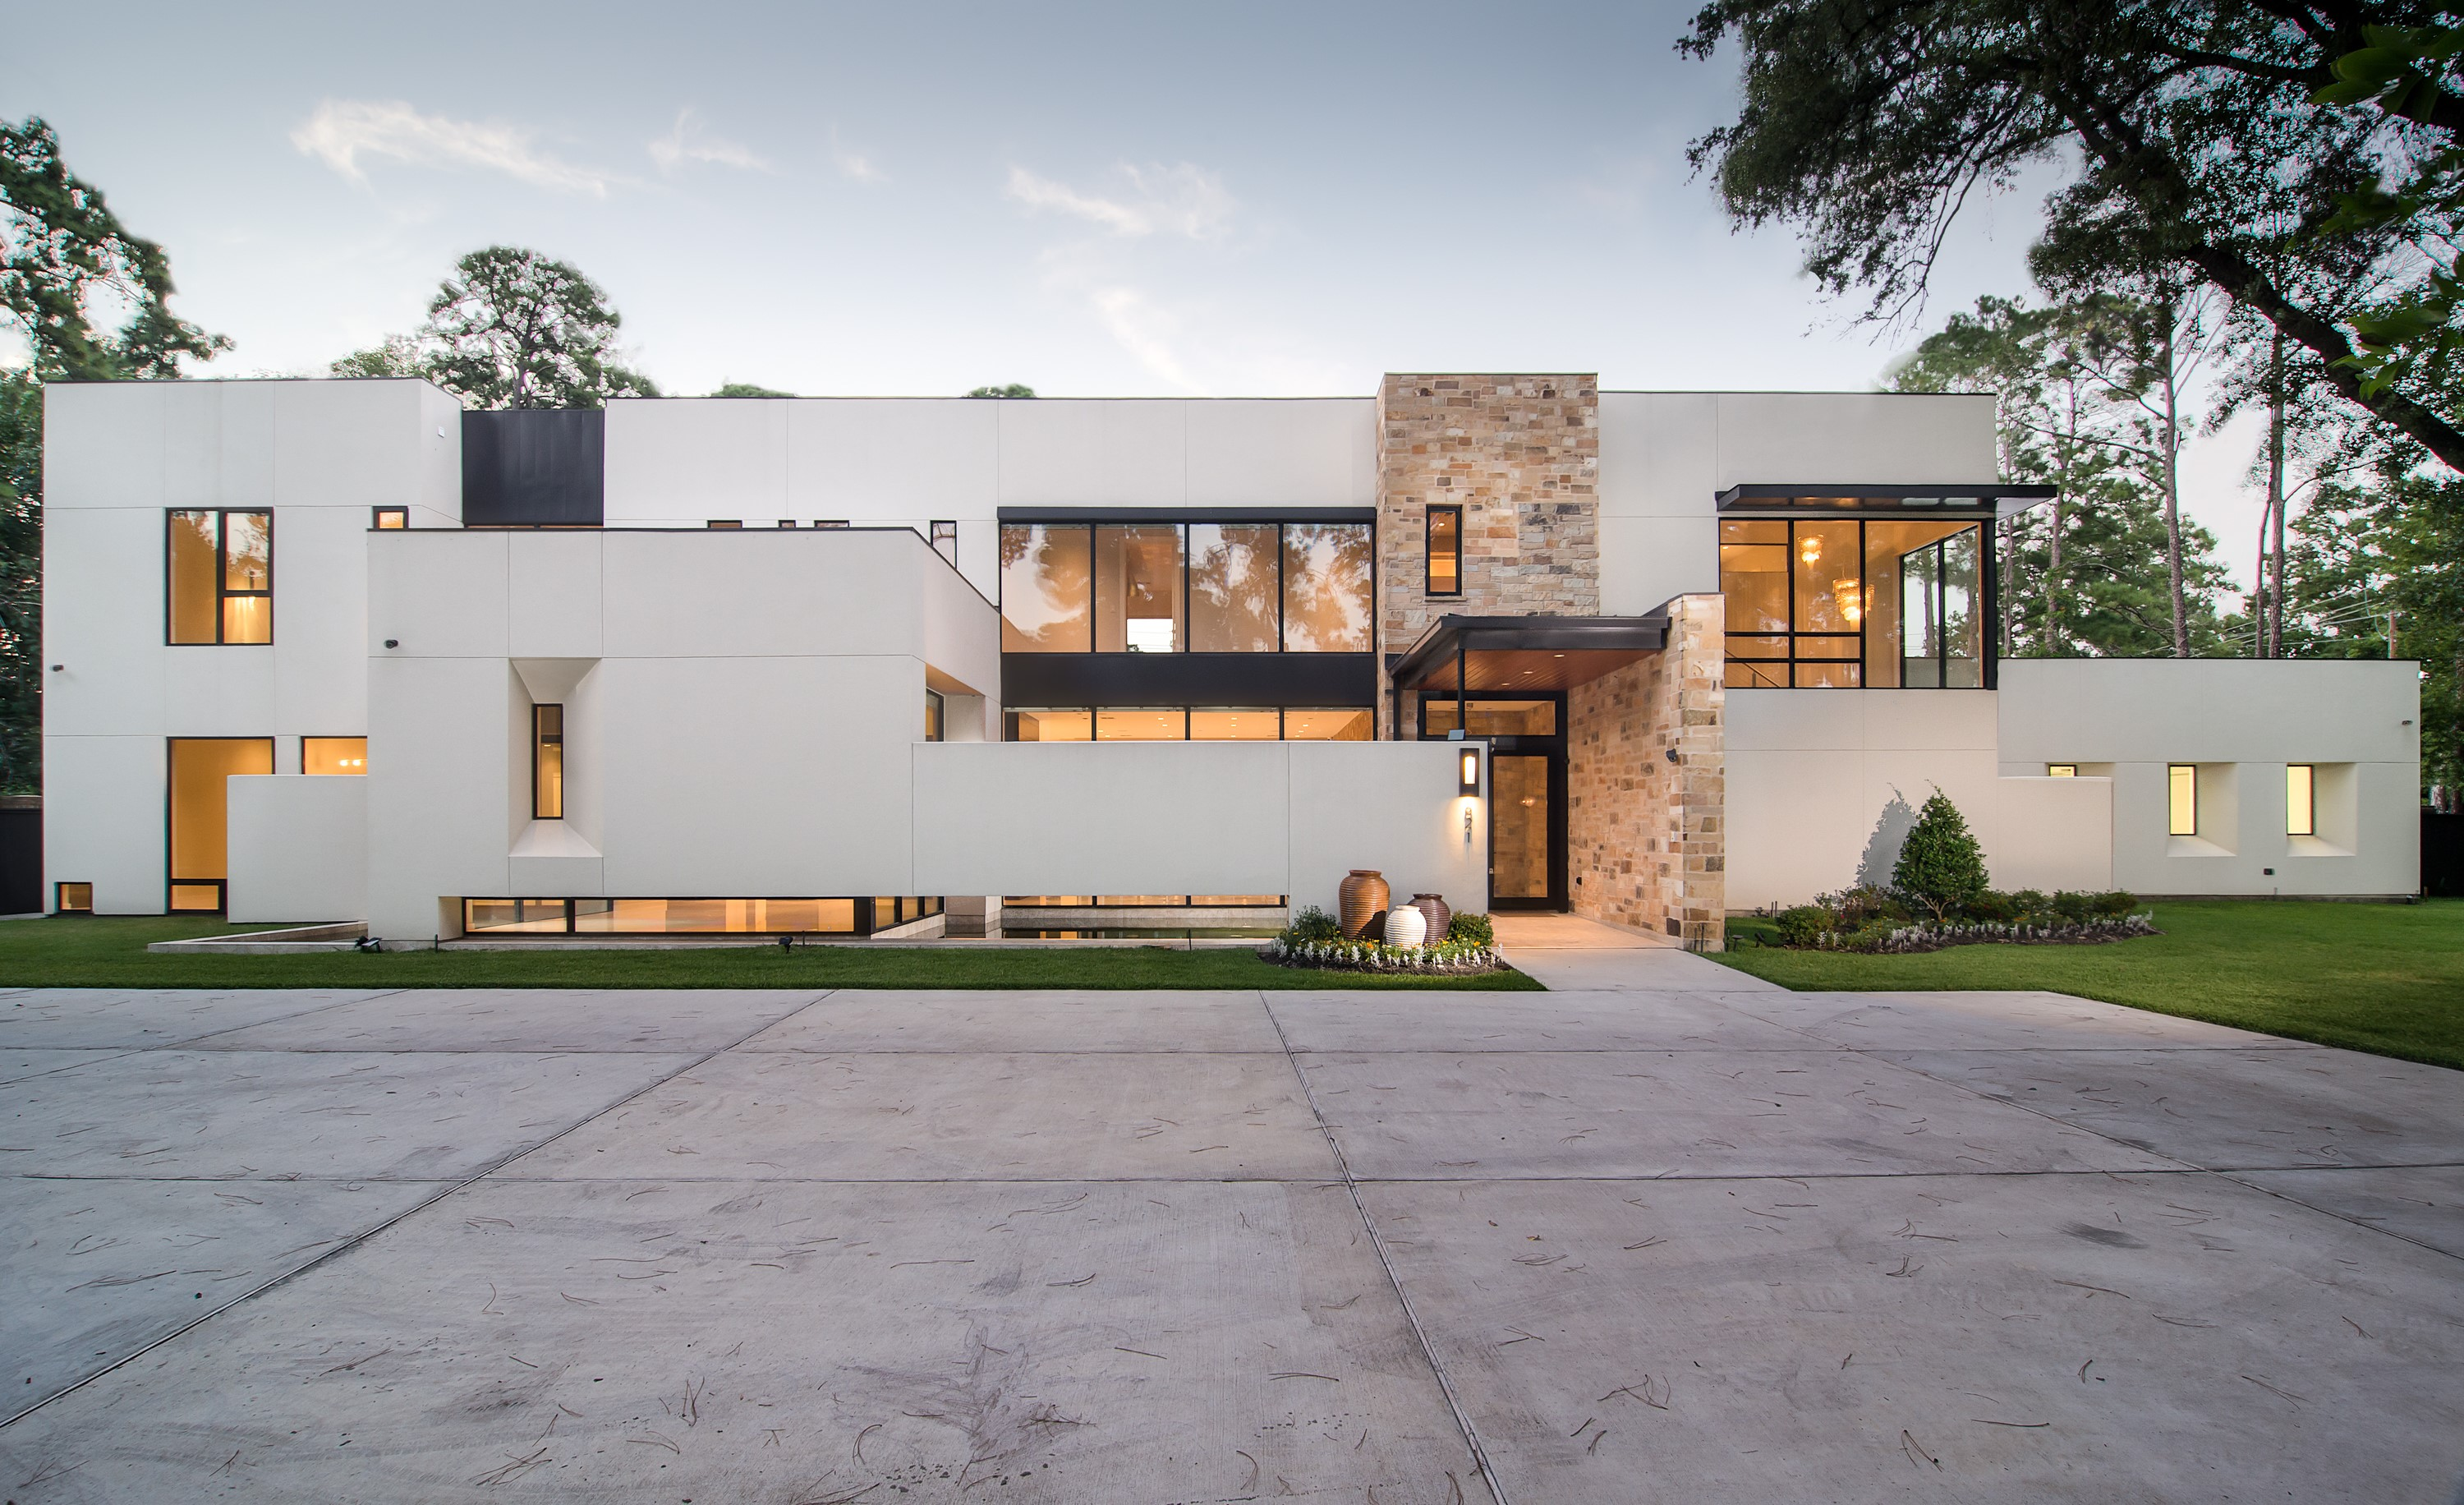 Modern home tours returns to houston on september 20th for Foto case moderne design